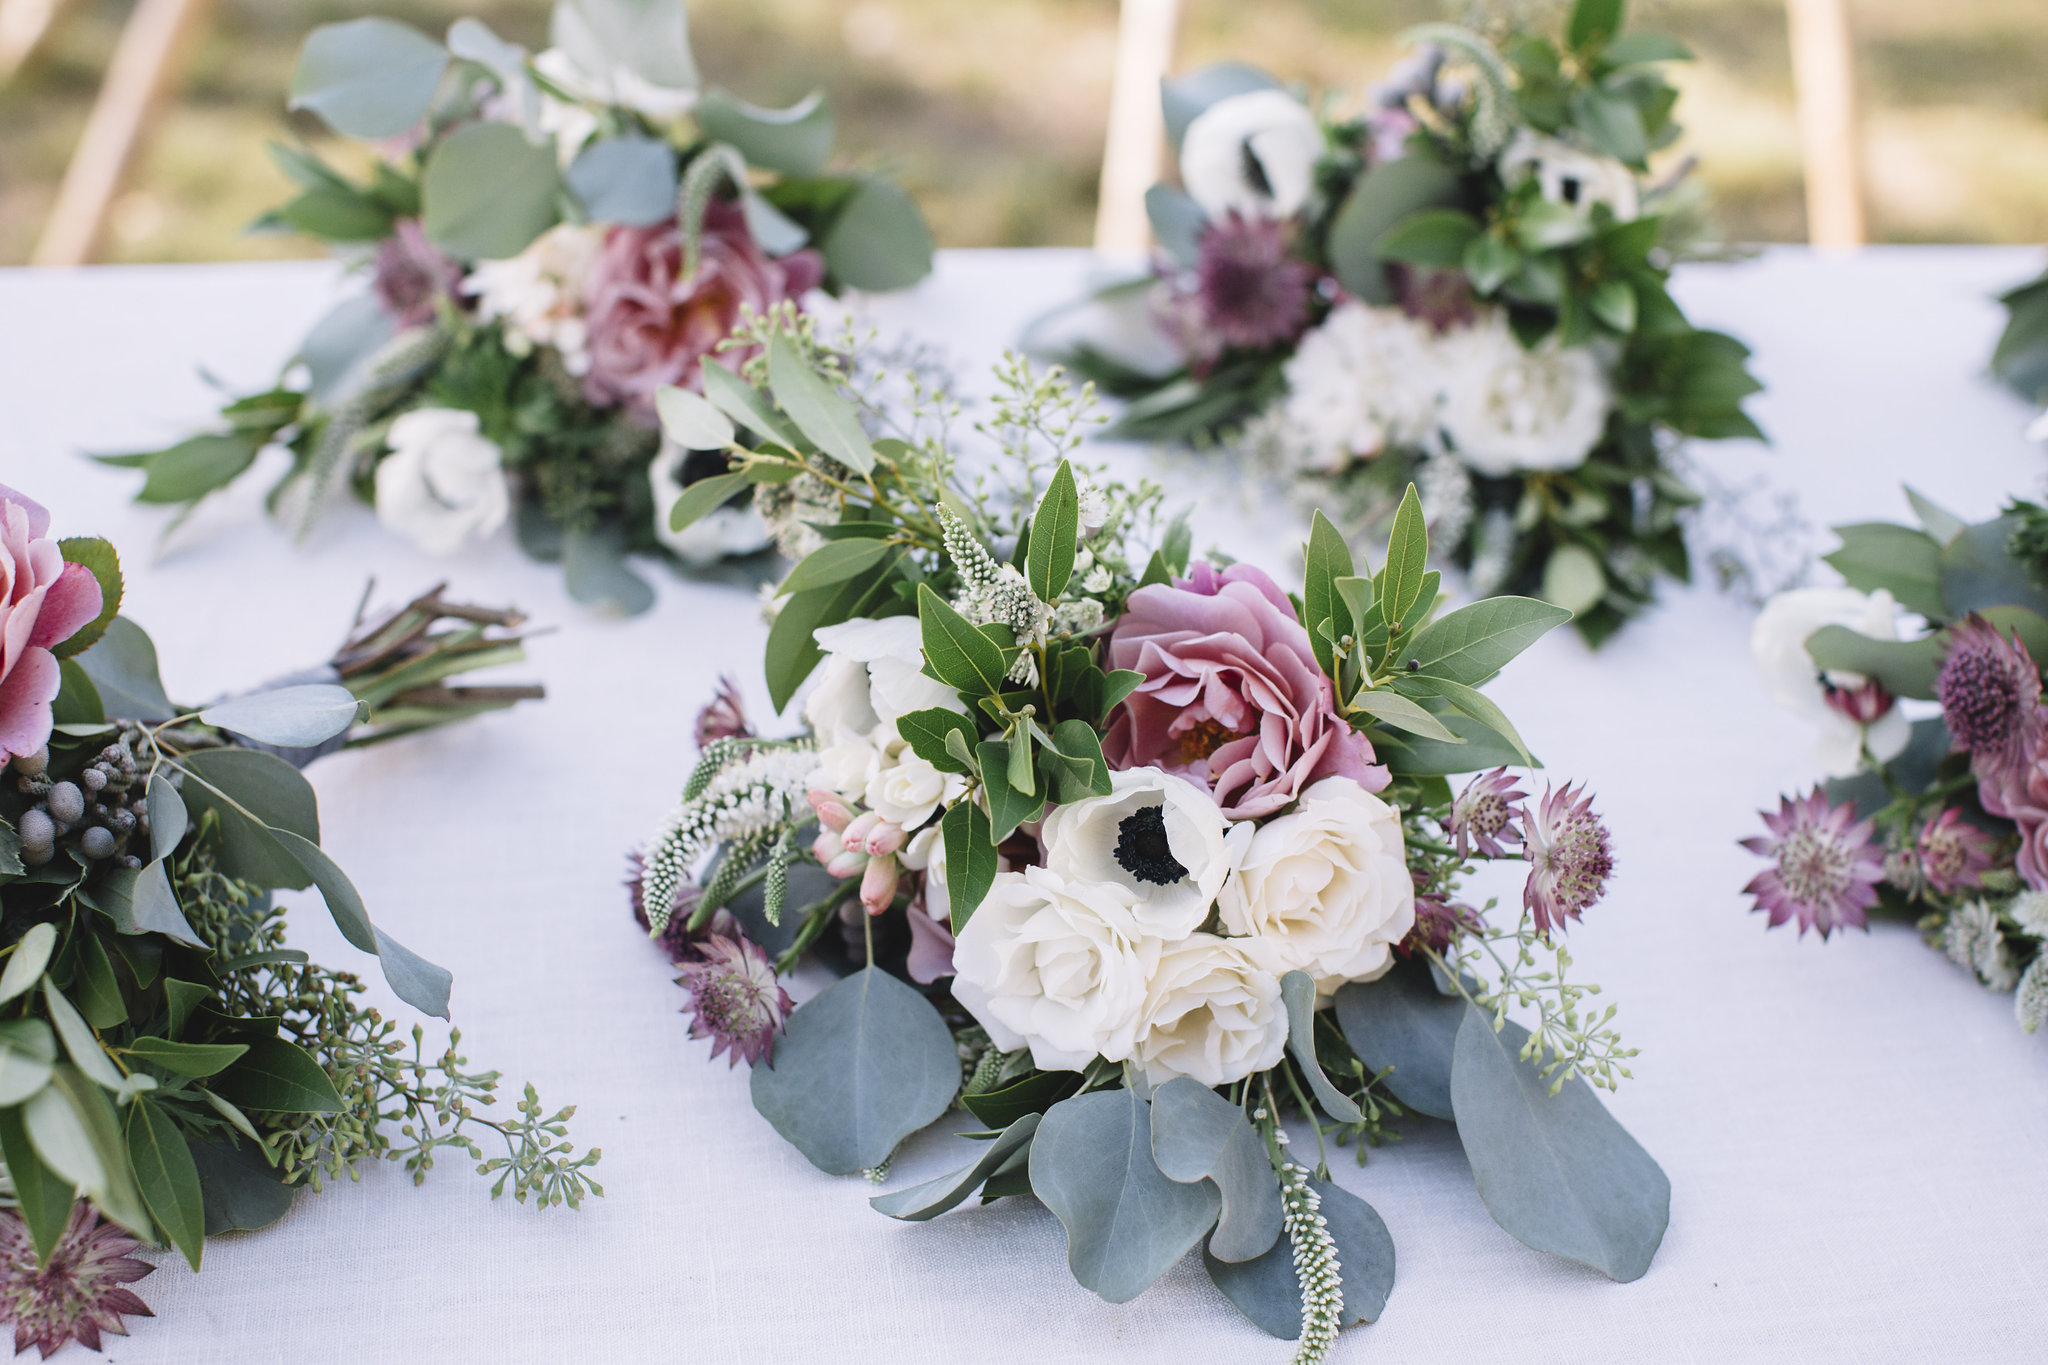 Alternative Bridesmaids Bouquets by Venn Floral to adorn ceremony structure |Photo by Lucille Lawrence